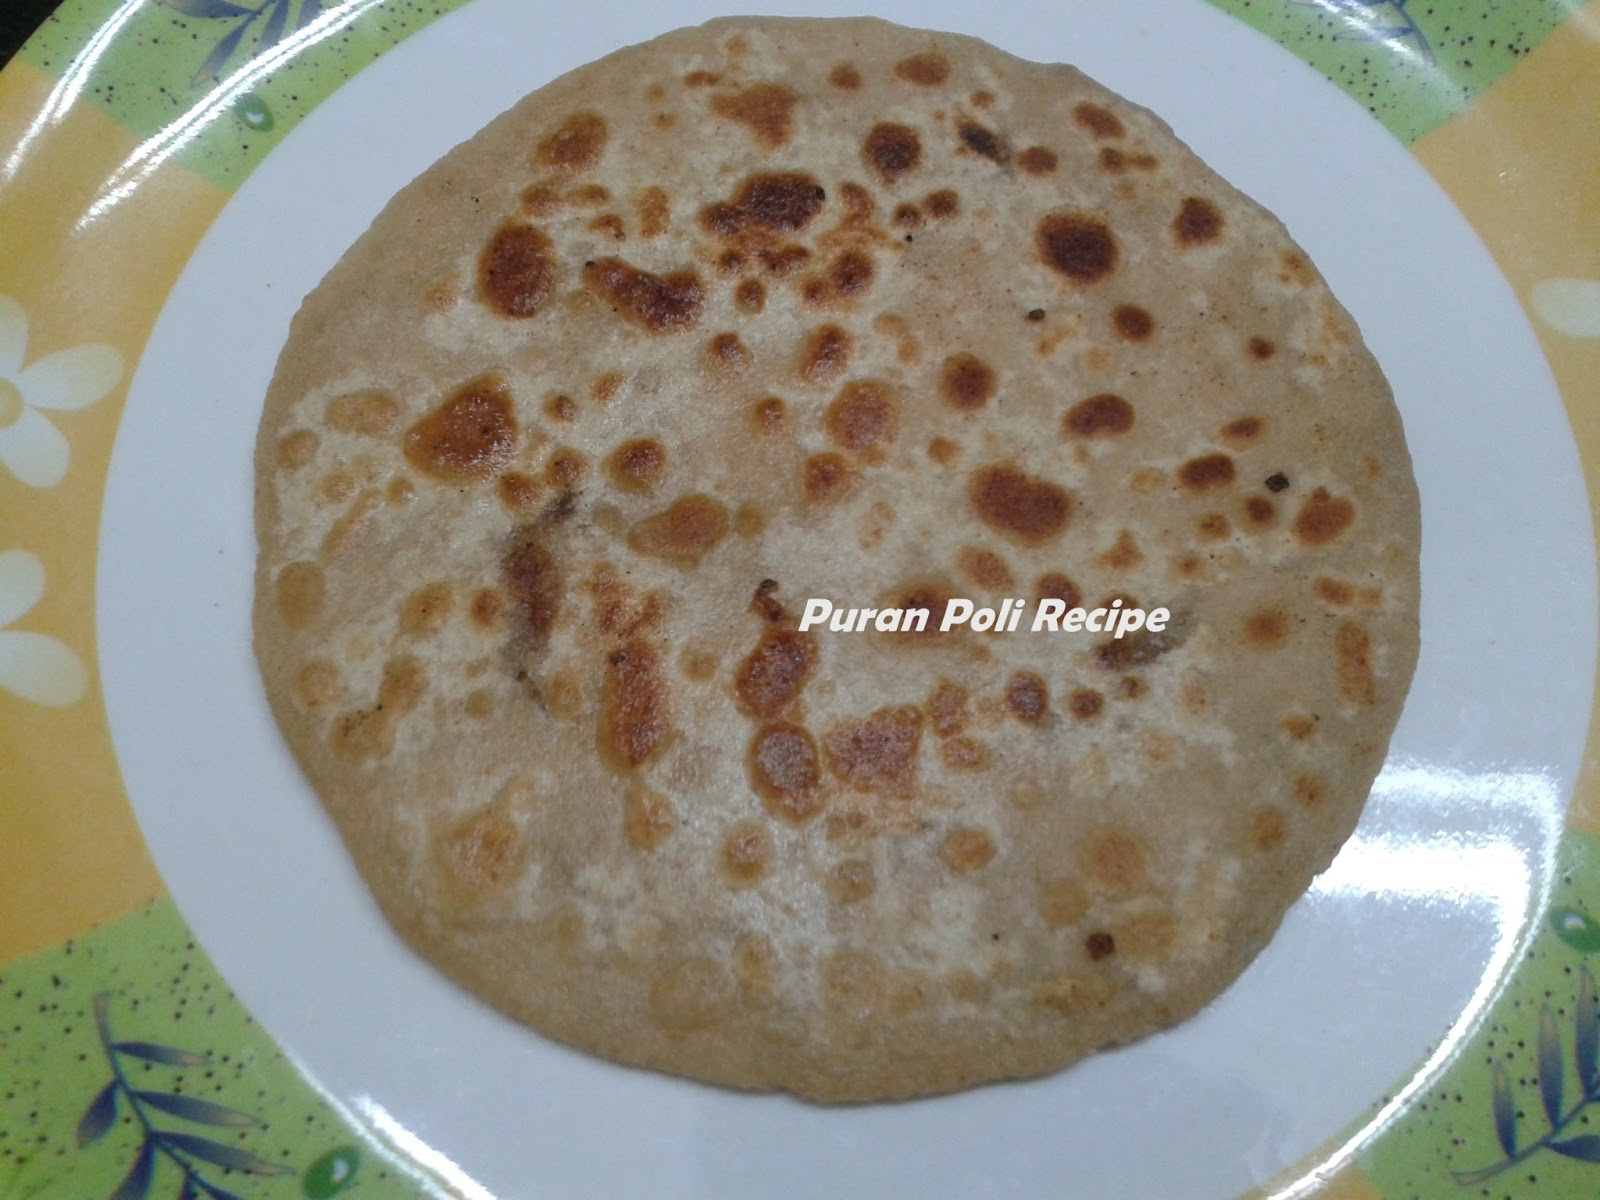 How to make Puran Poli